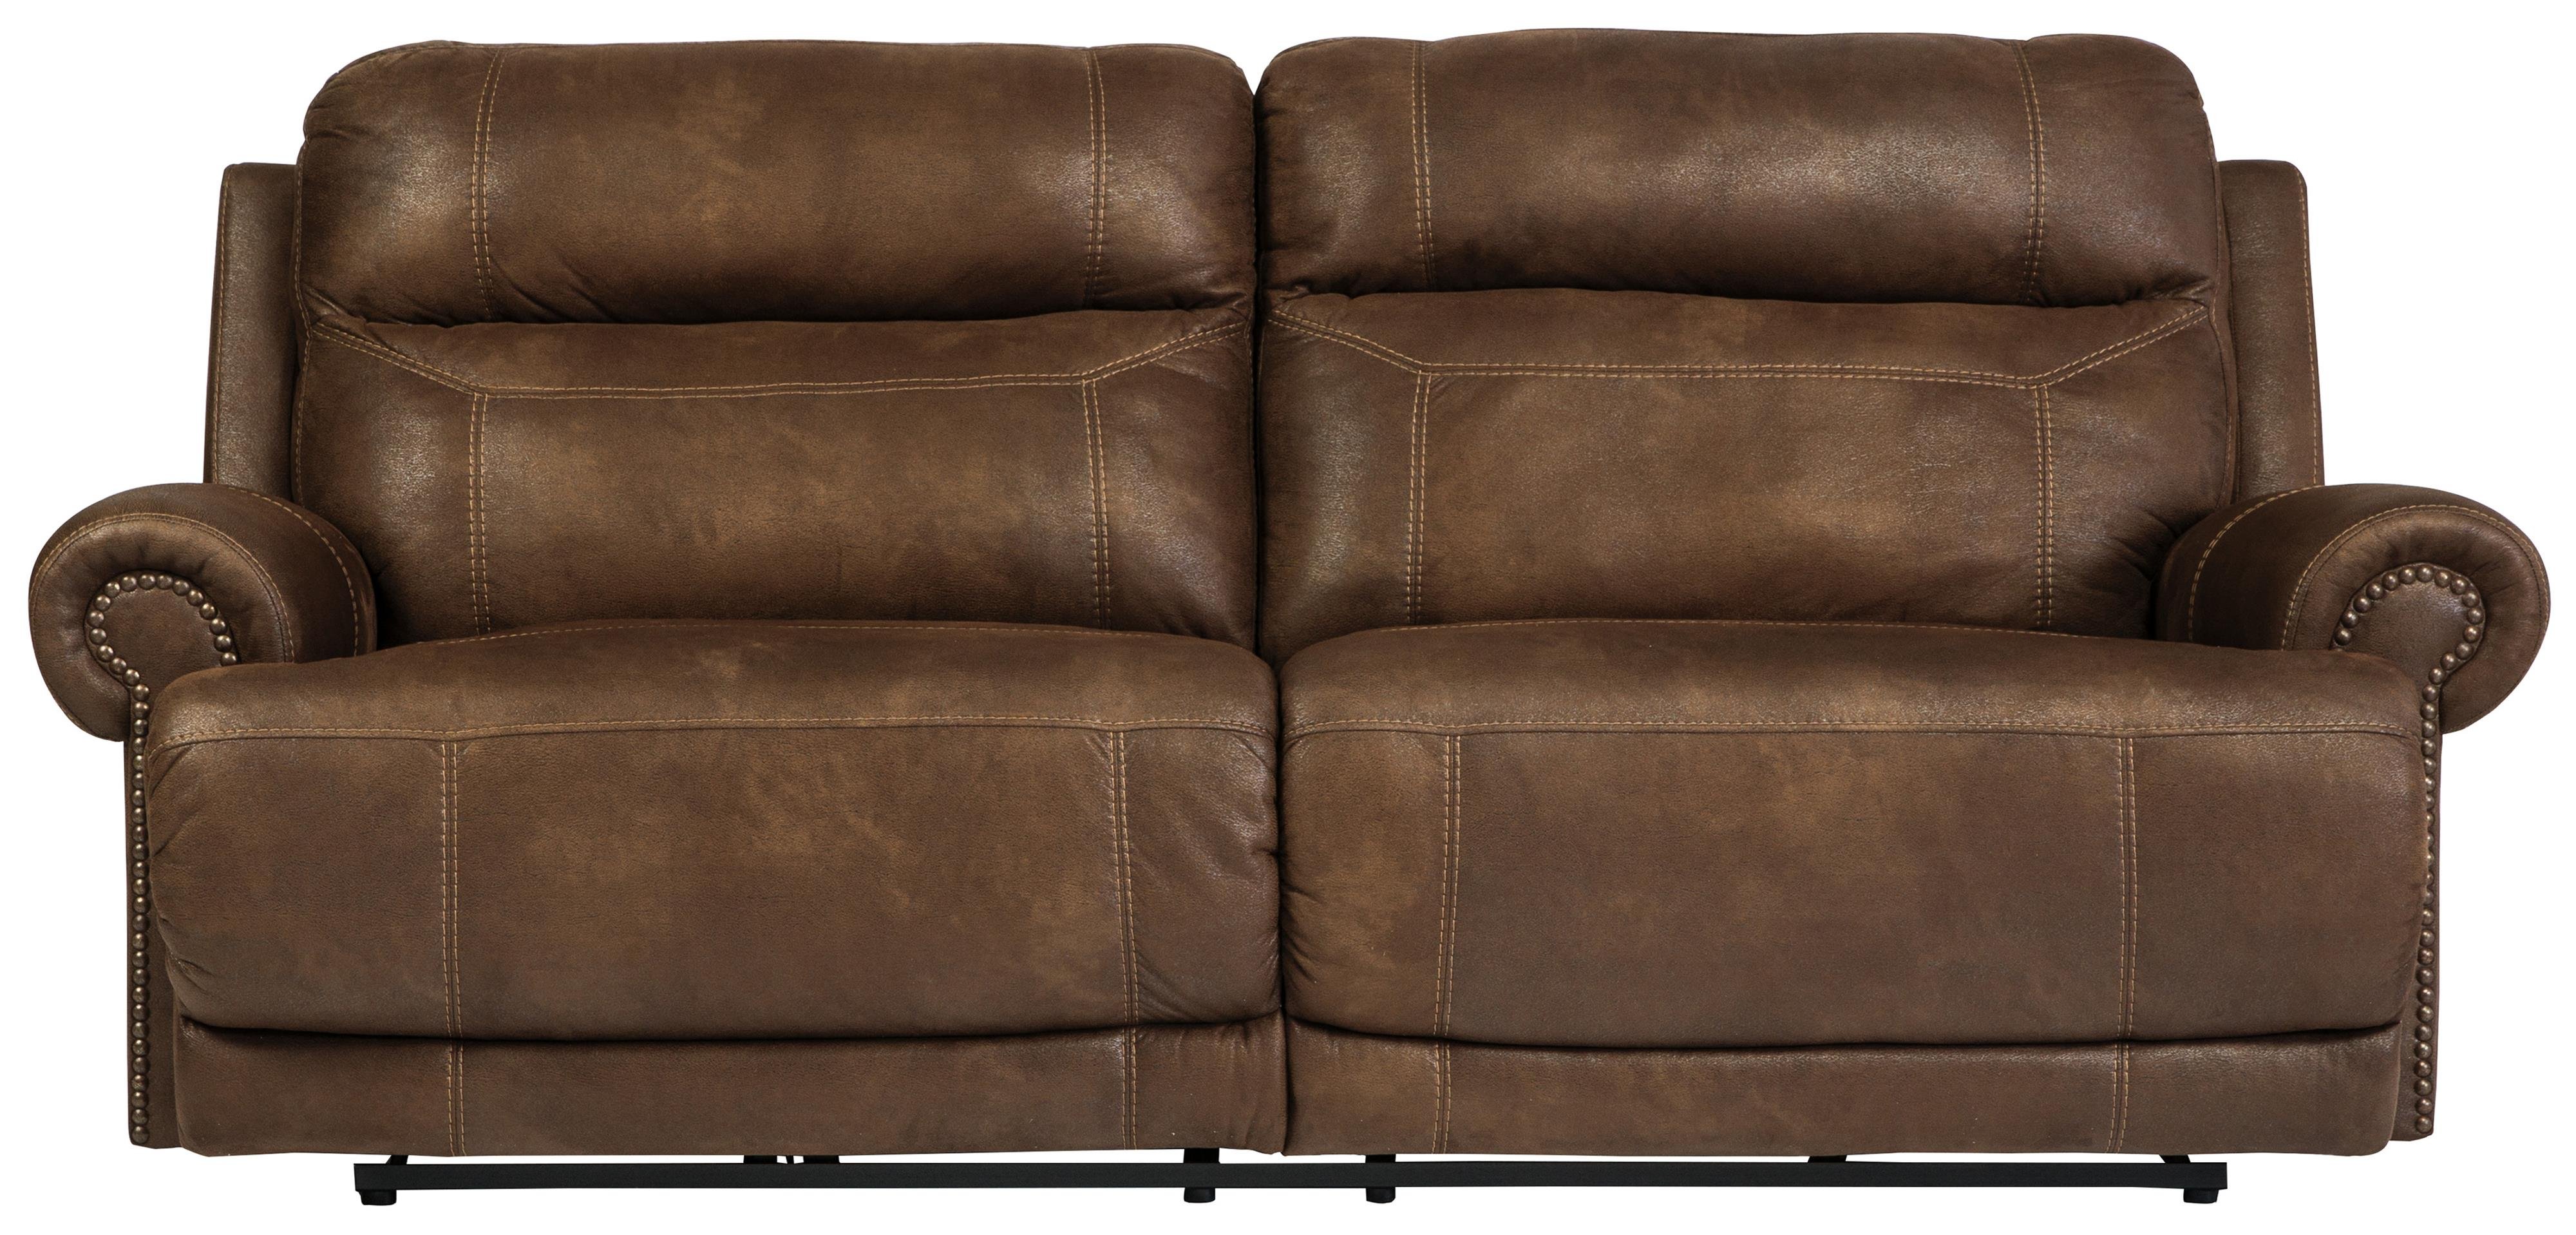 Superbe 2 Seat Reclining Sofa With Rolled Arms And Nailhead Trim